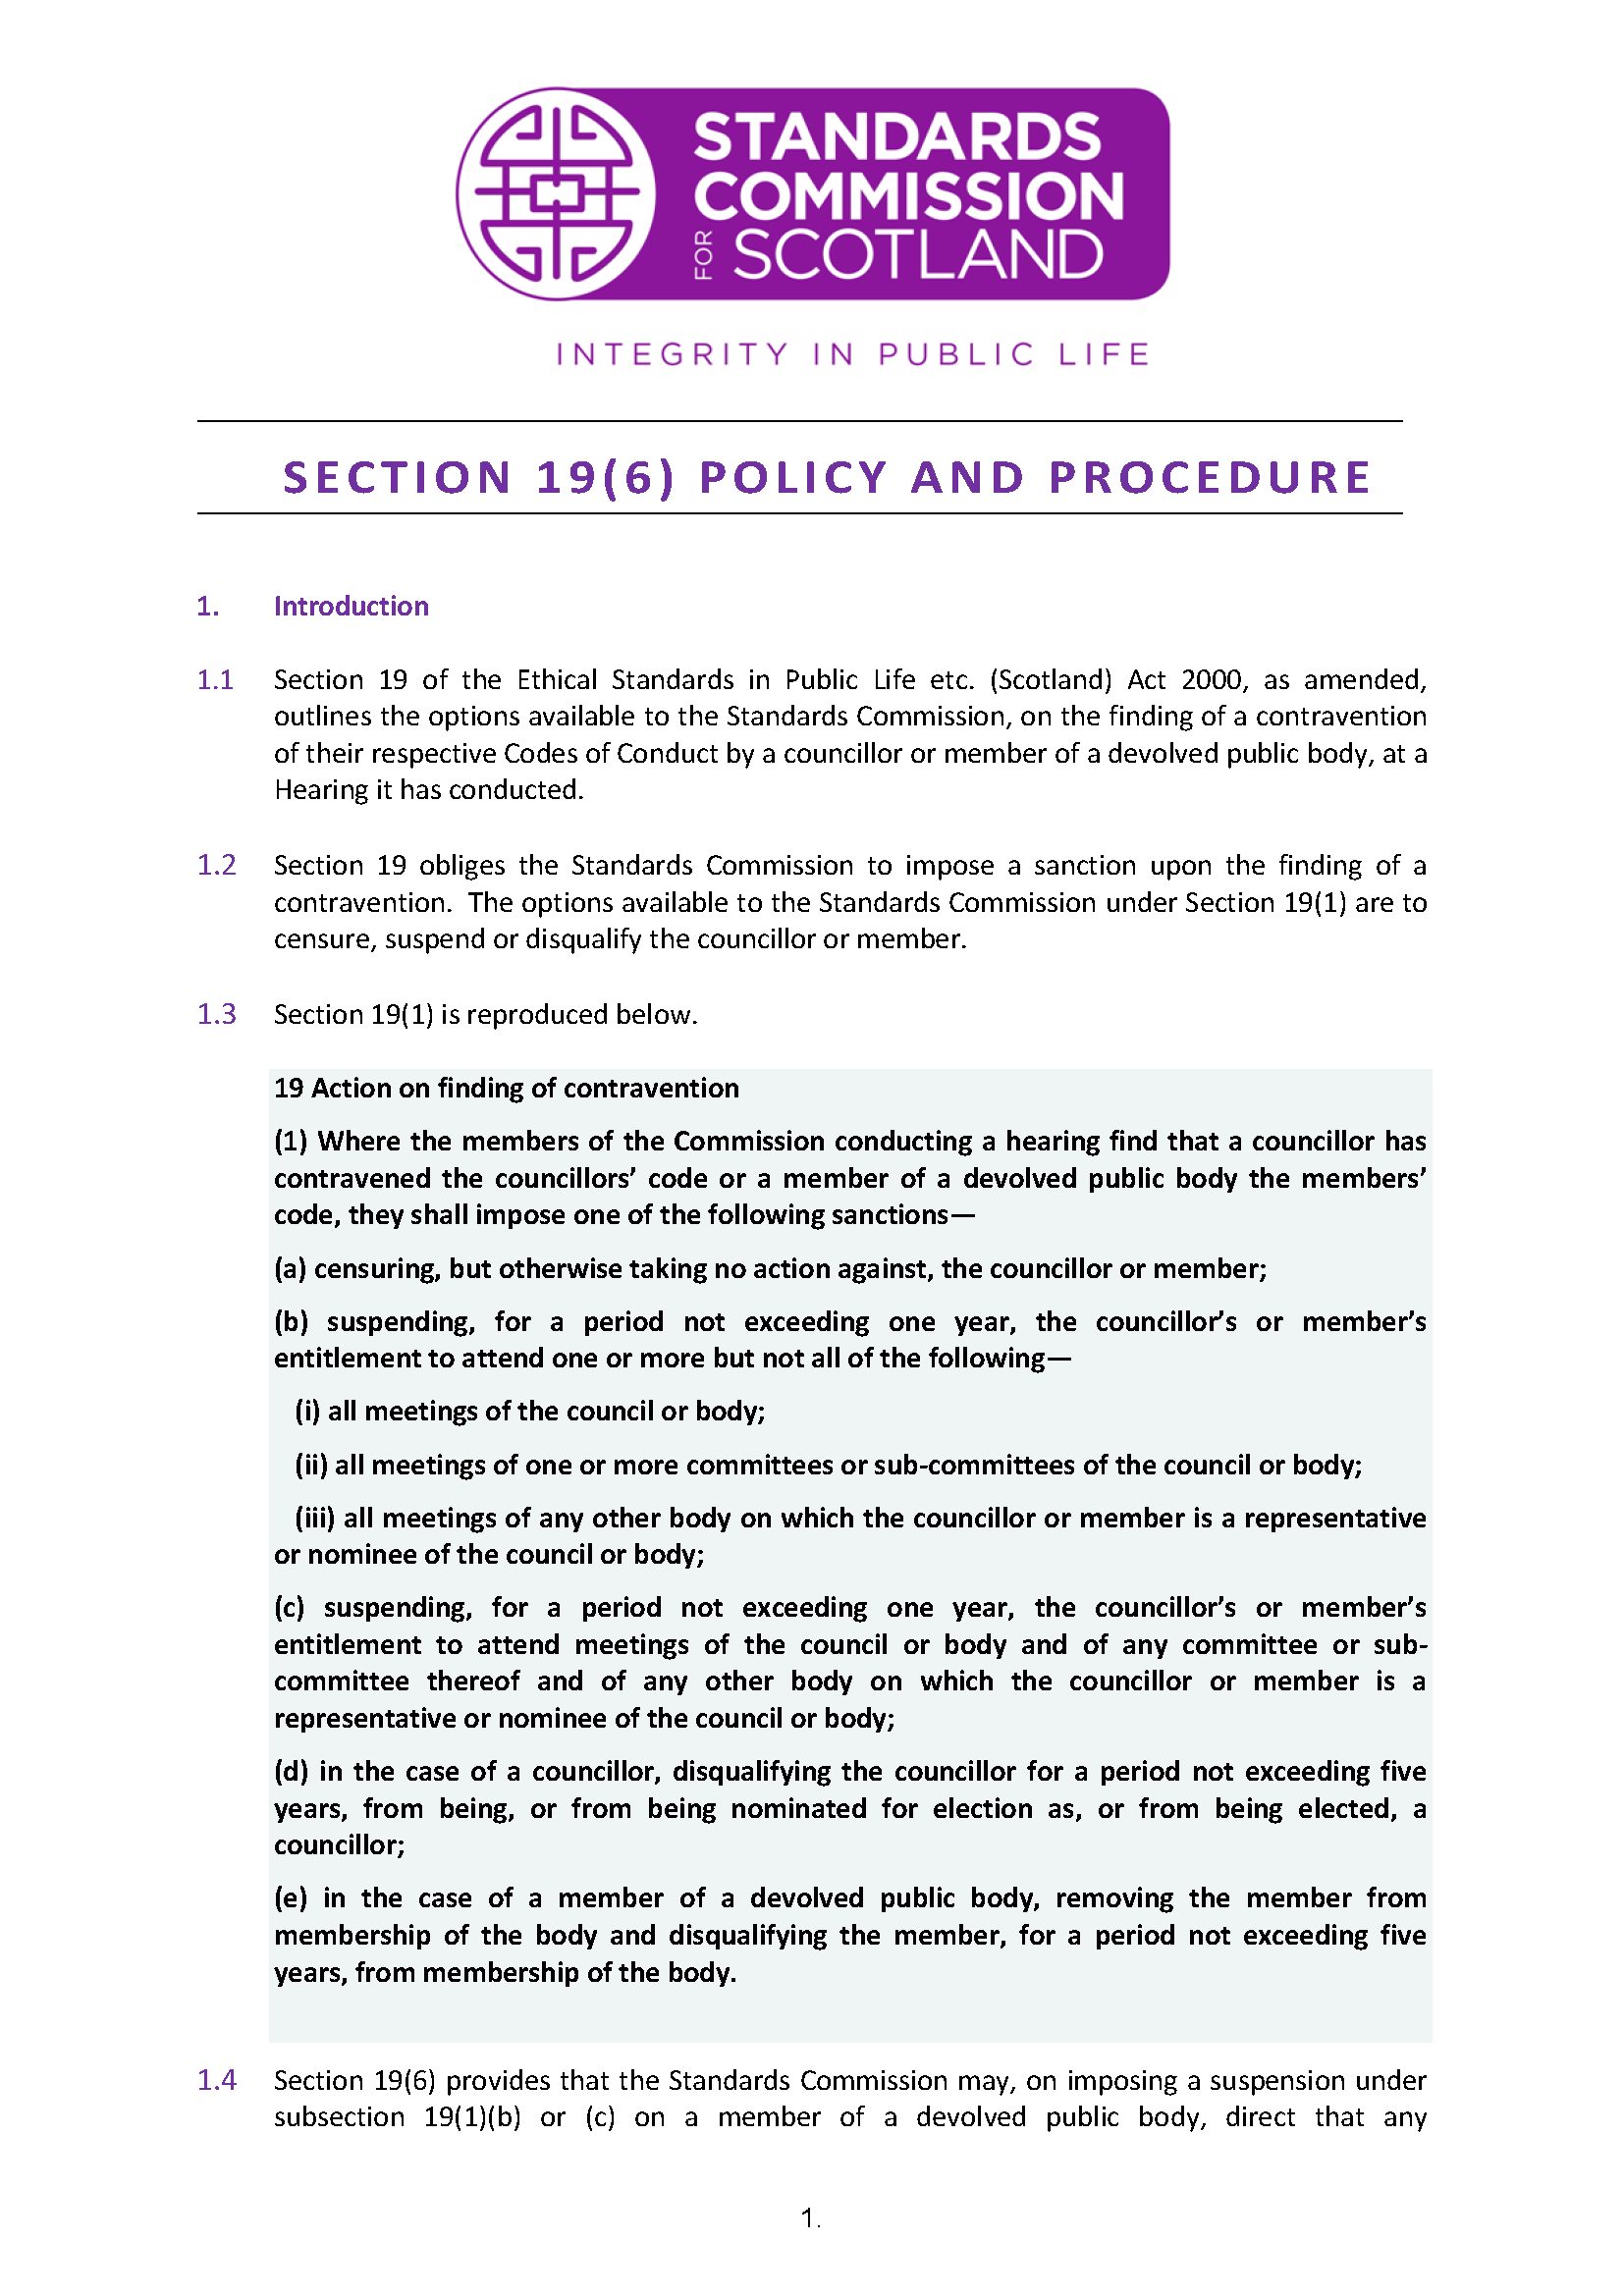 Section 19(6) Policy - Imposing a suspension on a member of a devolved public body